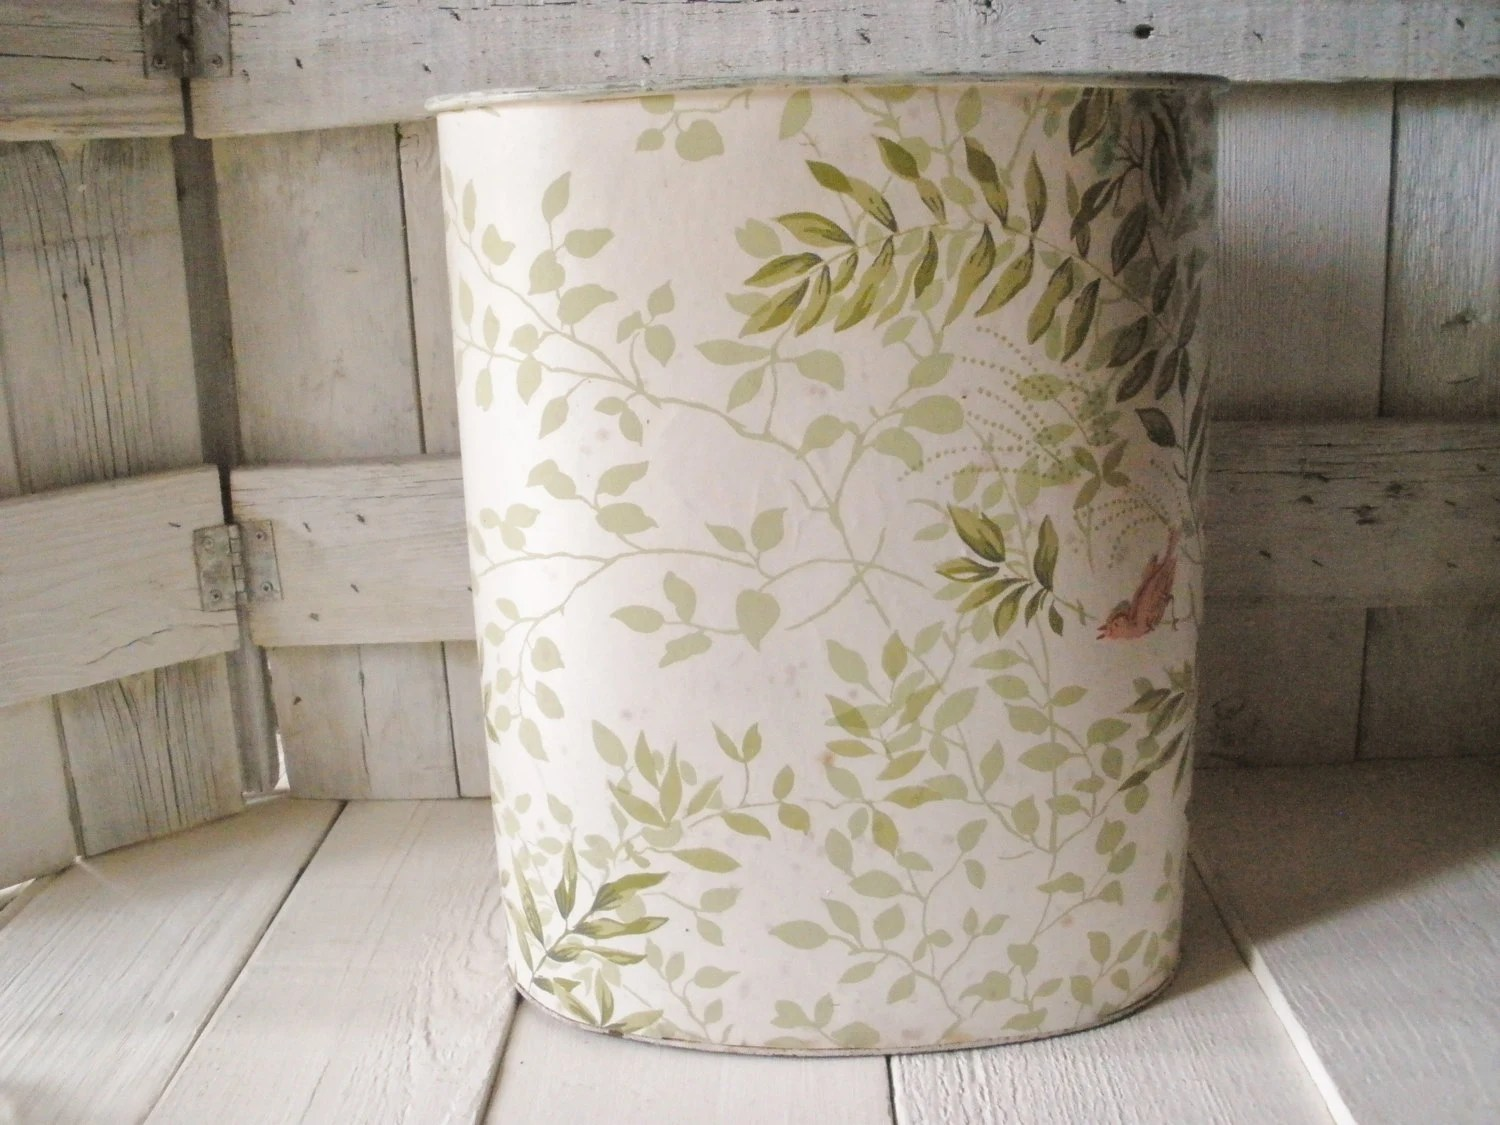 Shabby Chic Waste Baskets Vintage Trash Can Waste Paper Basket Nashco Shabby Chic Bird Vine